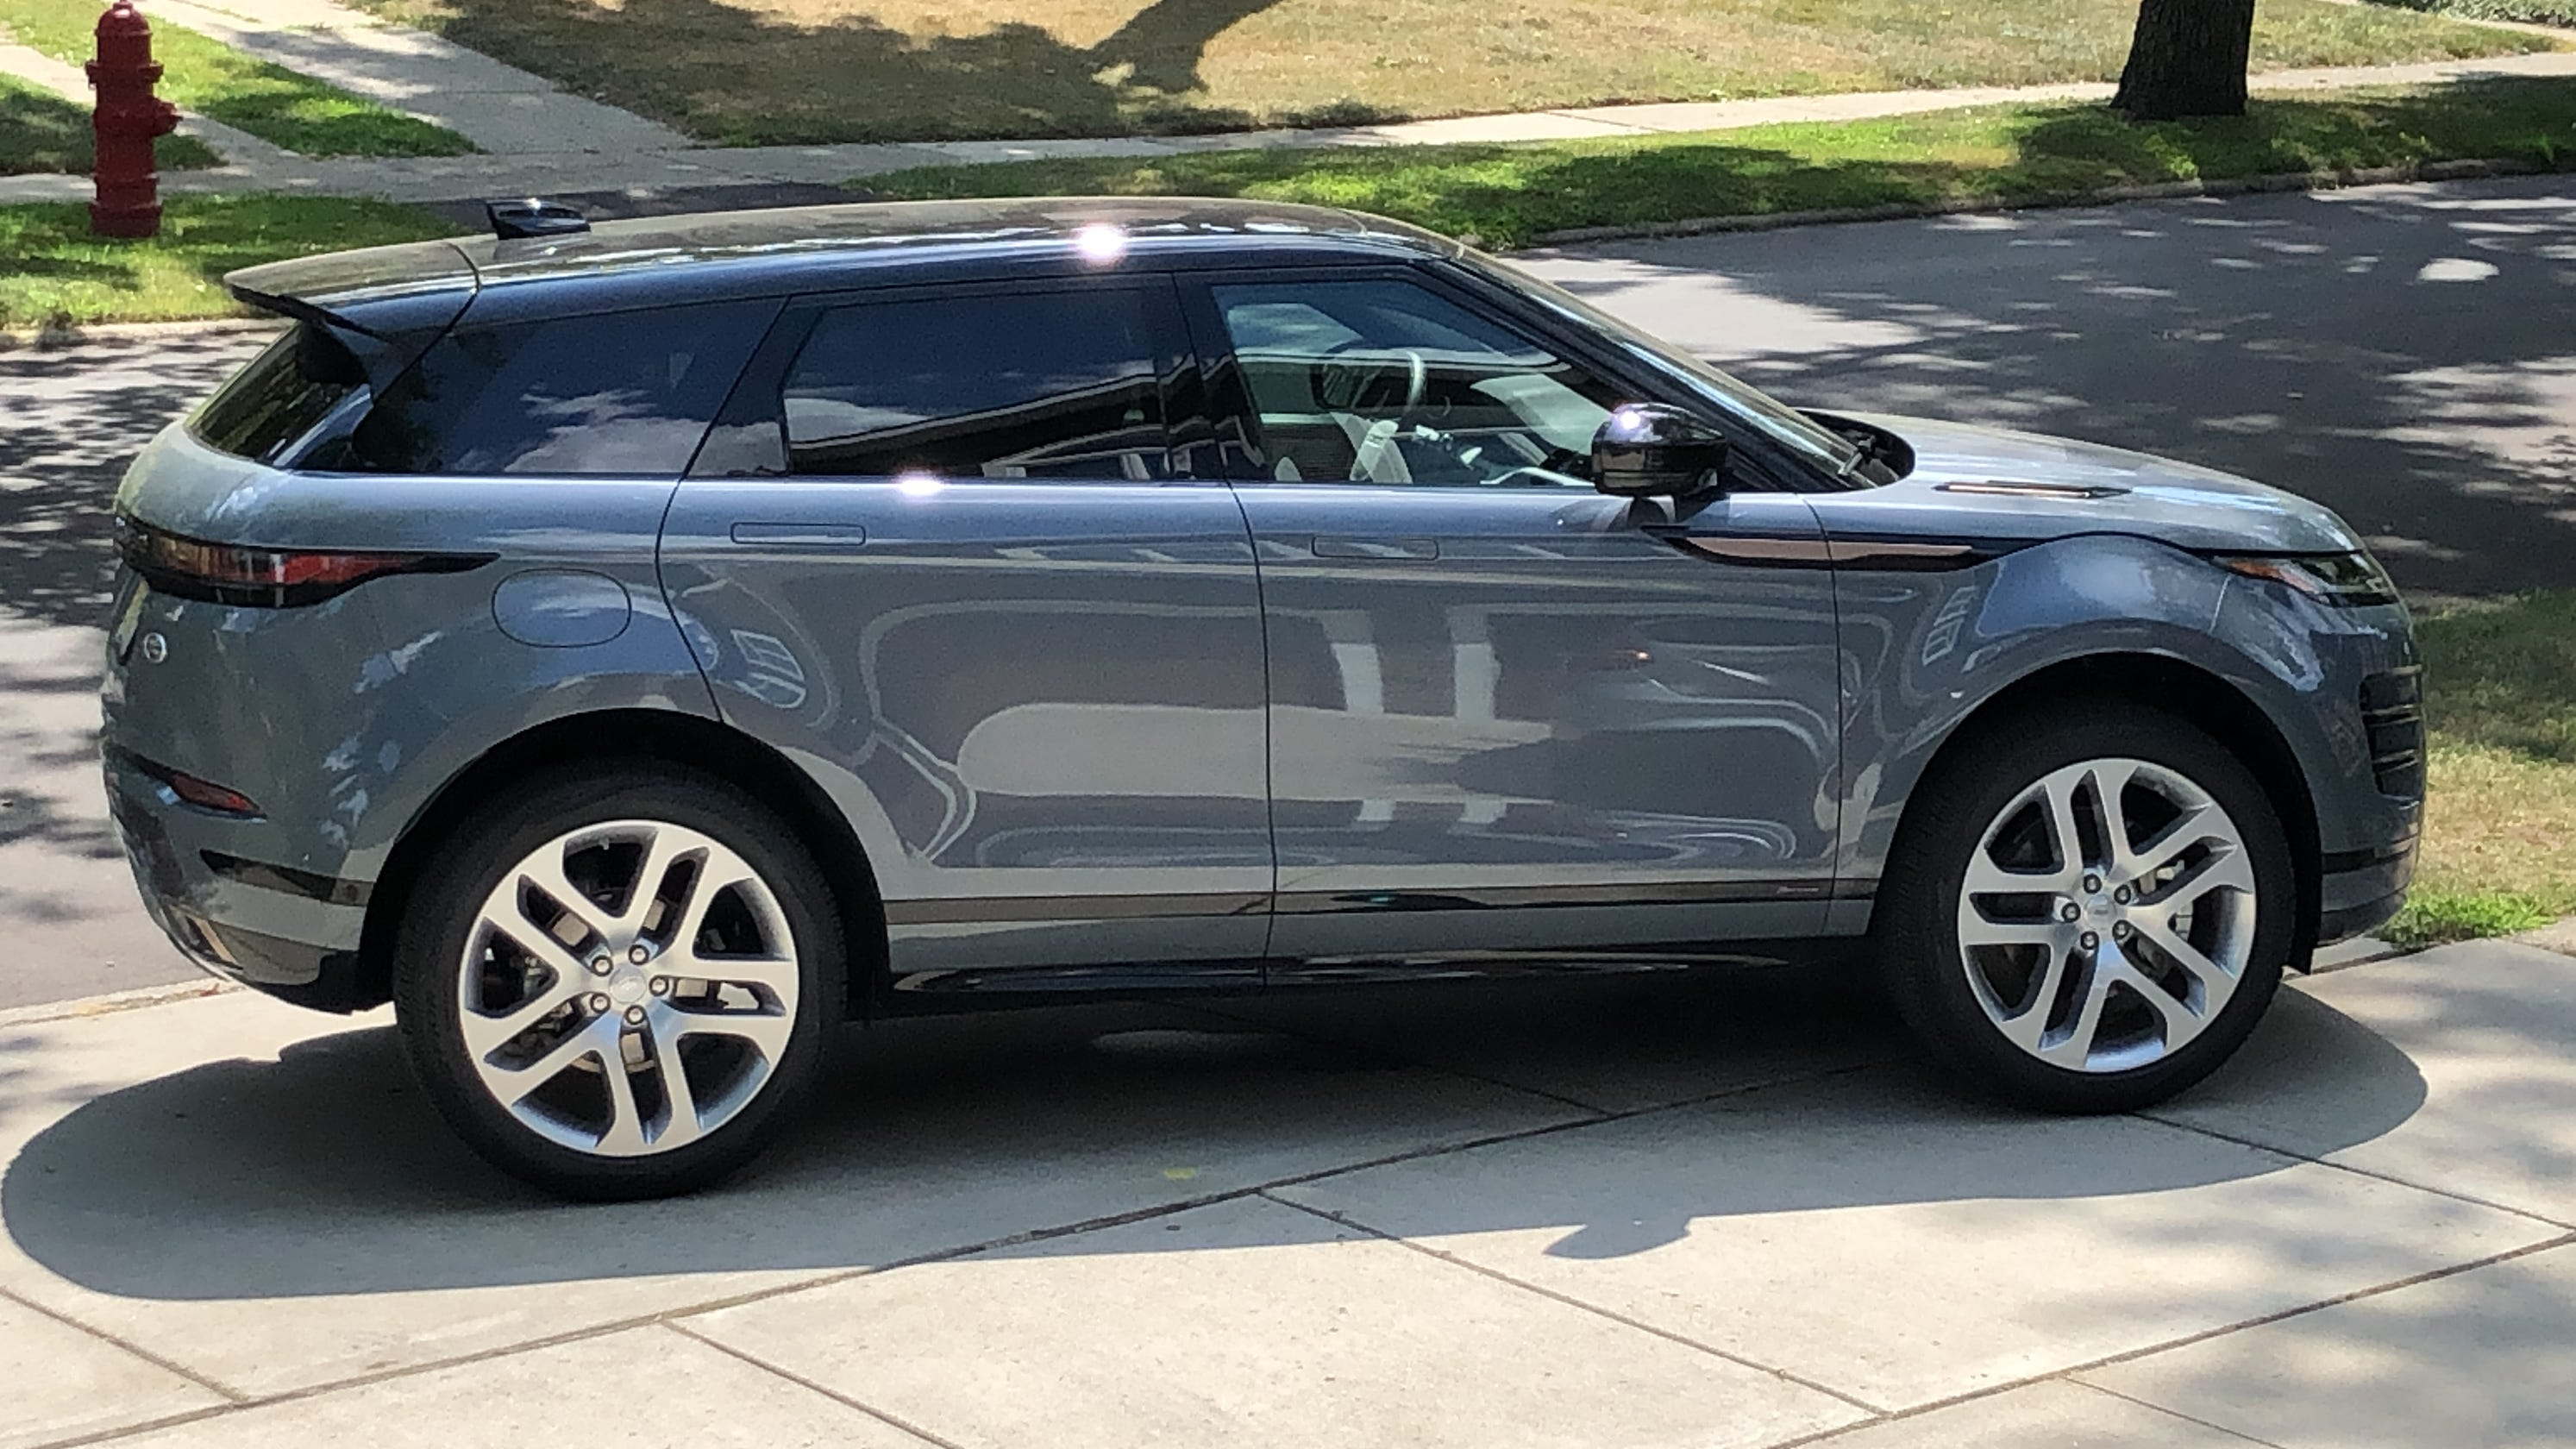 pricey-2020-range-rover-evoque-suv-nails-the-look-and-feel-but-has-maddening-oversight